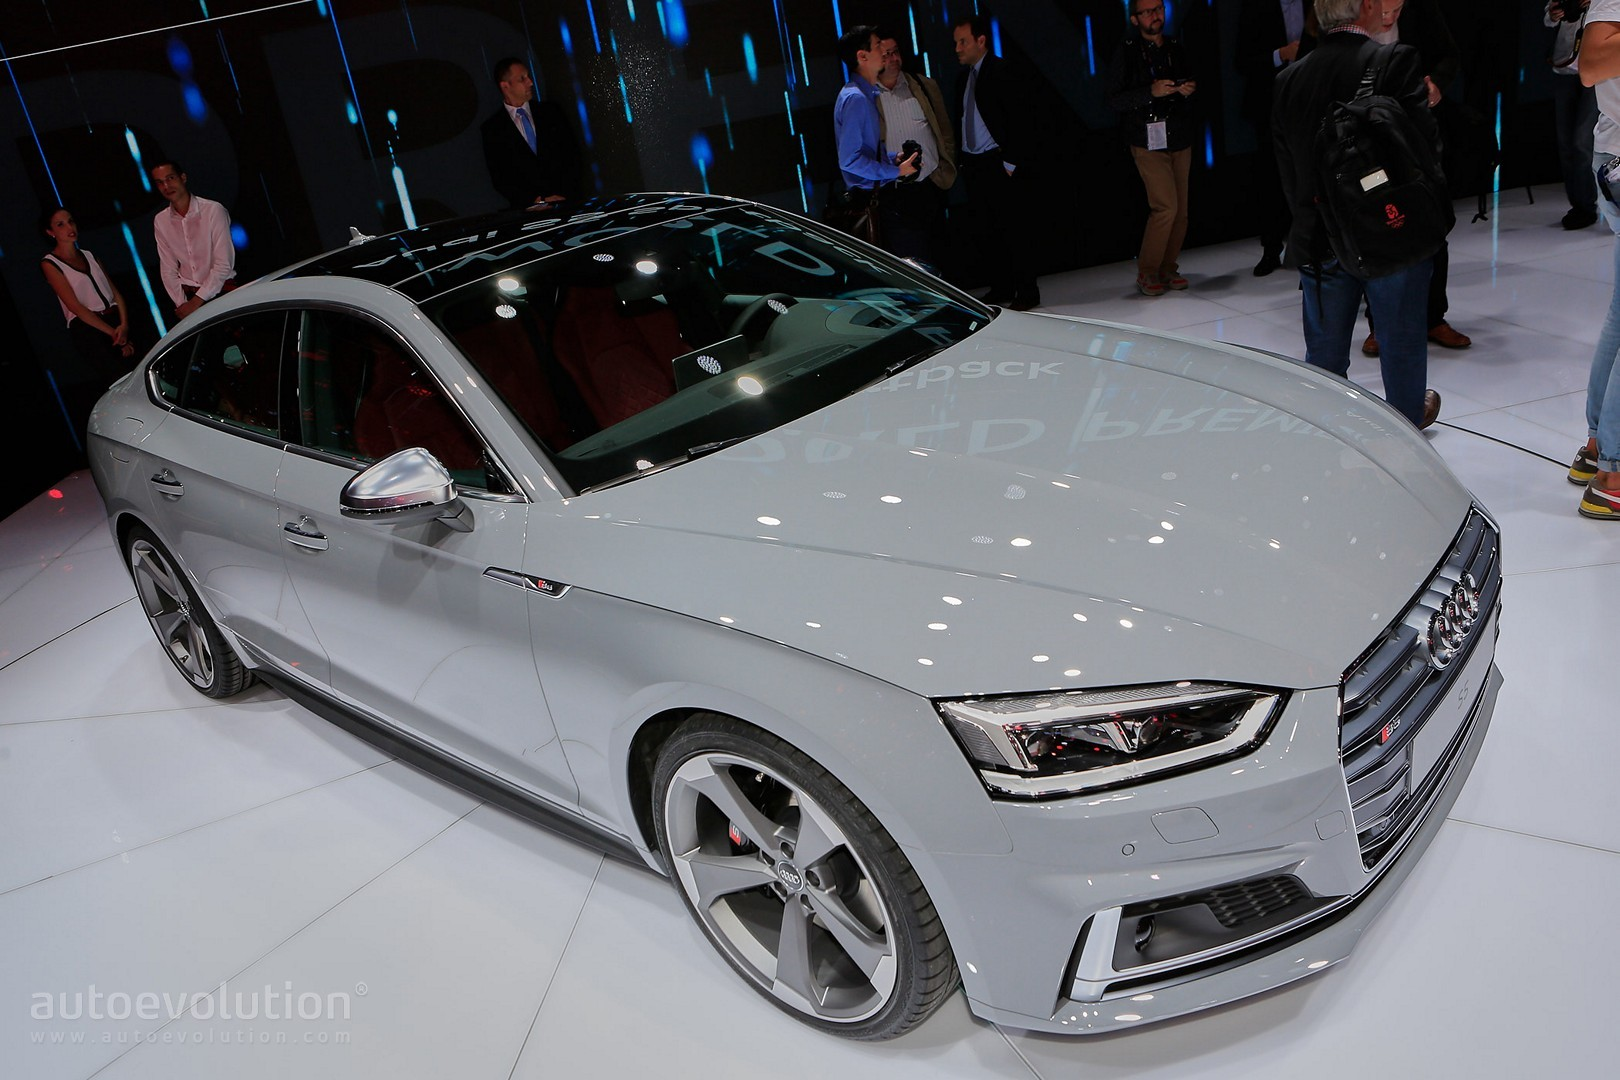 2017 Audi S5 Sportback Looks Like A Shark Thanks To Nardo